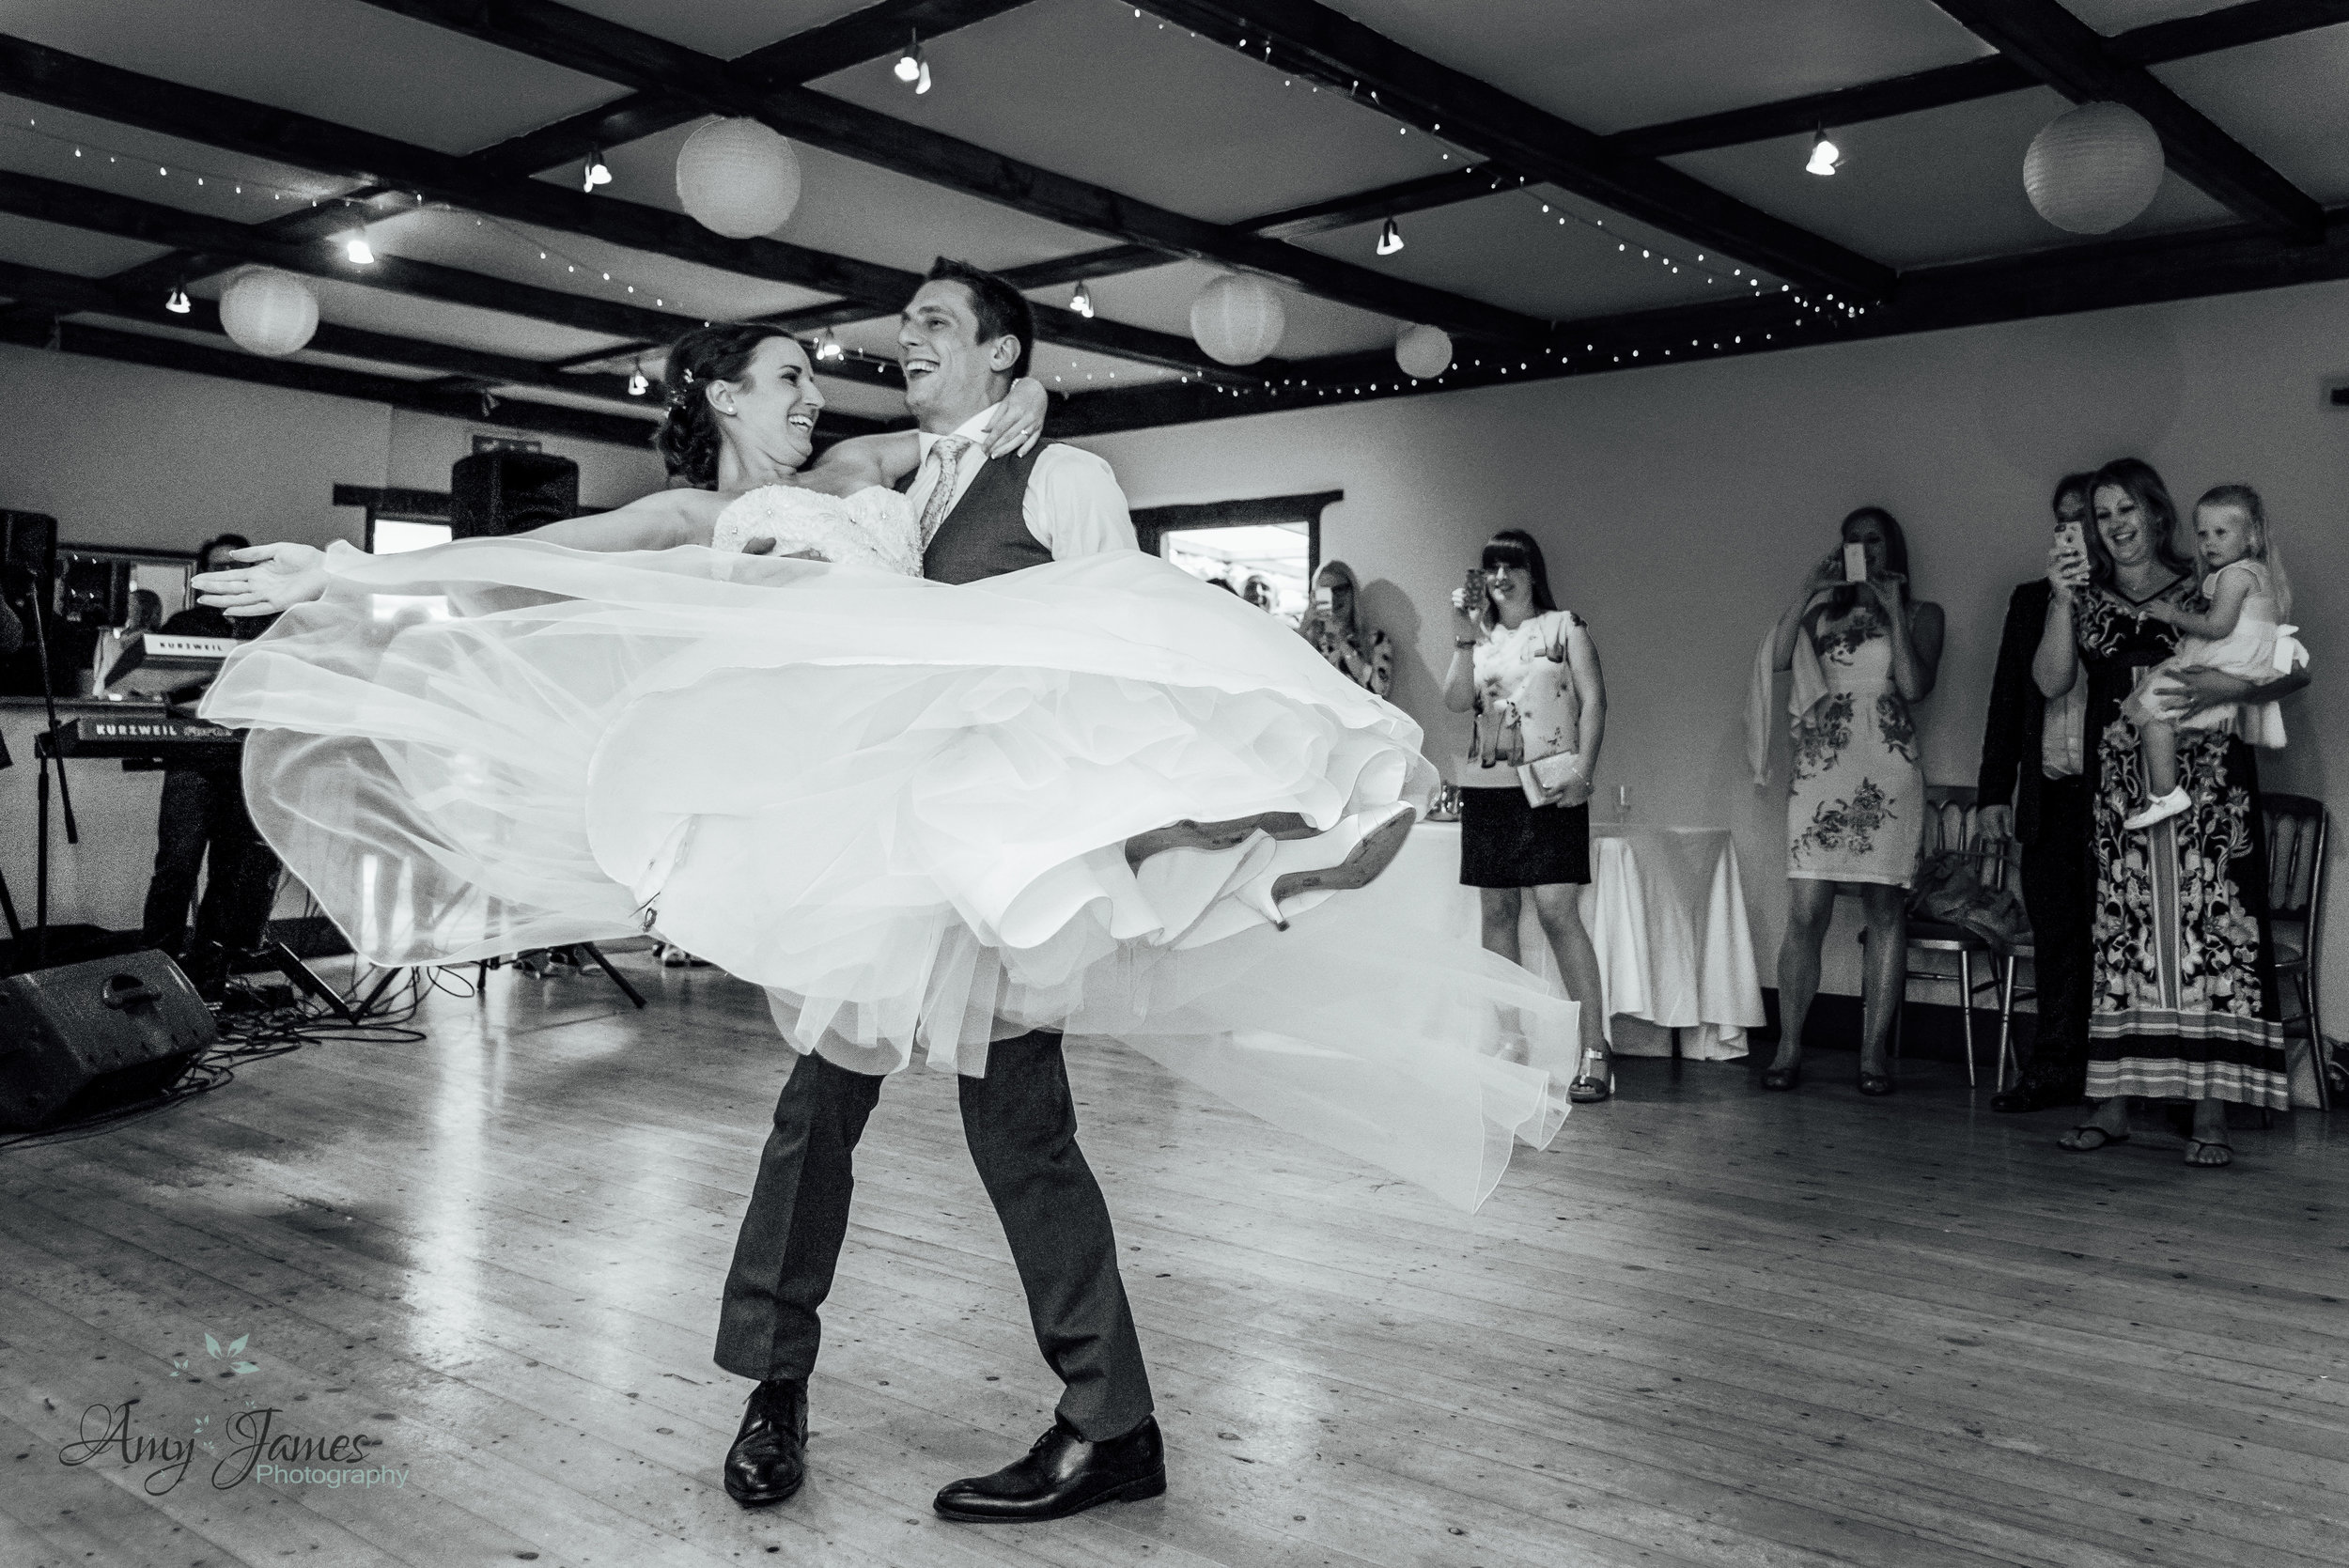 Bride and Groom First Dance at Hampshire barn wedding venue by Amy James Photography documentary wedding photographer for Hampshire and Surrey